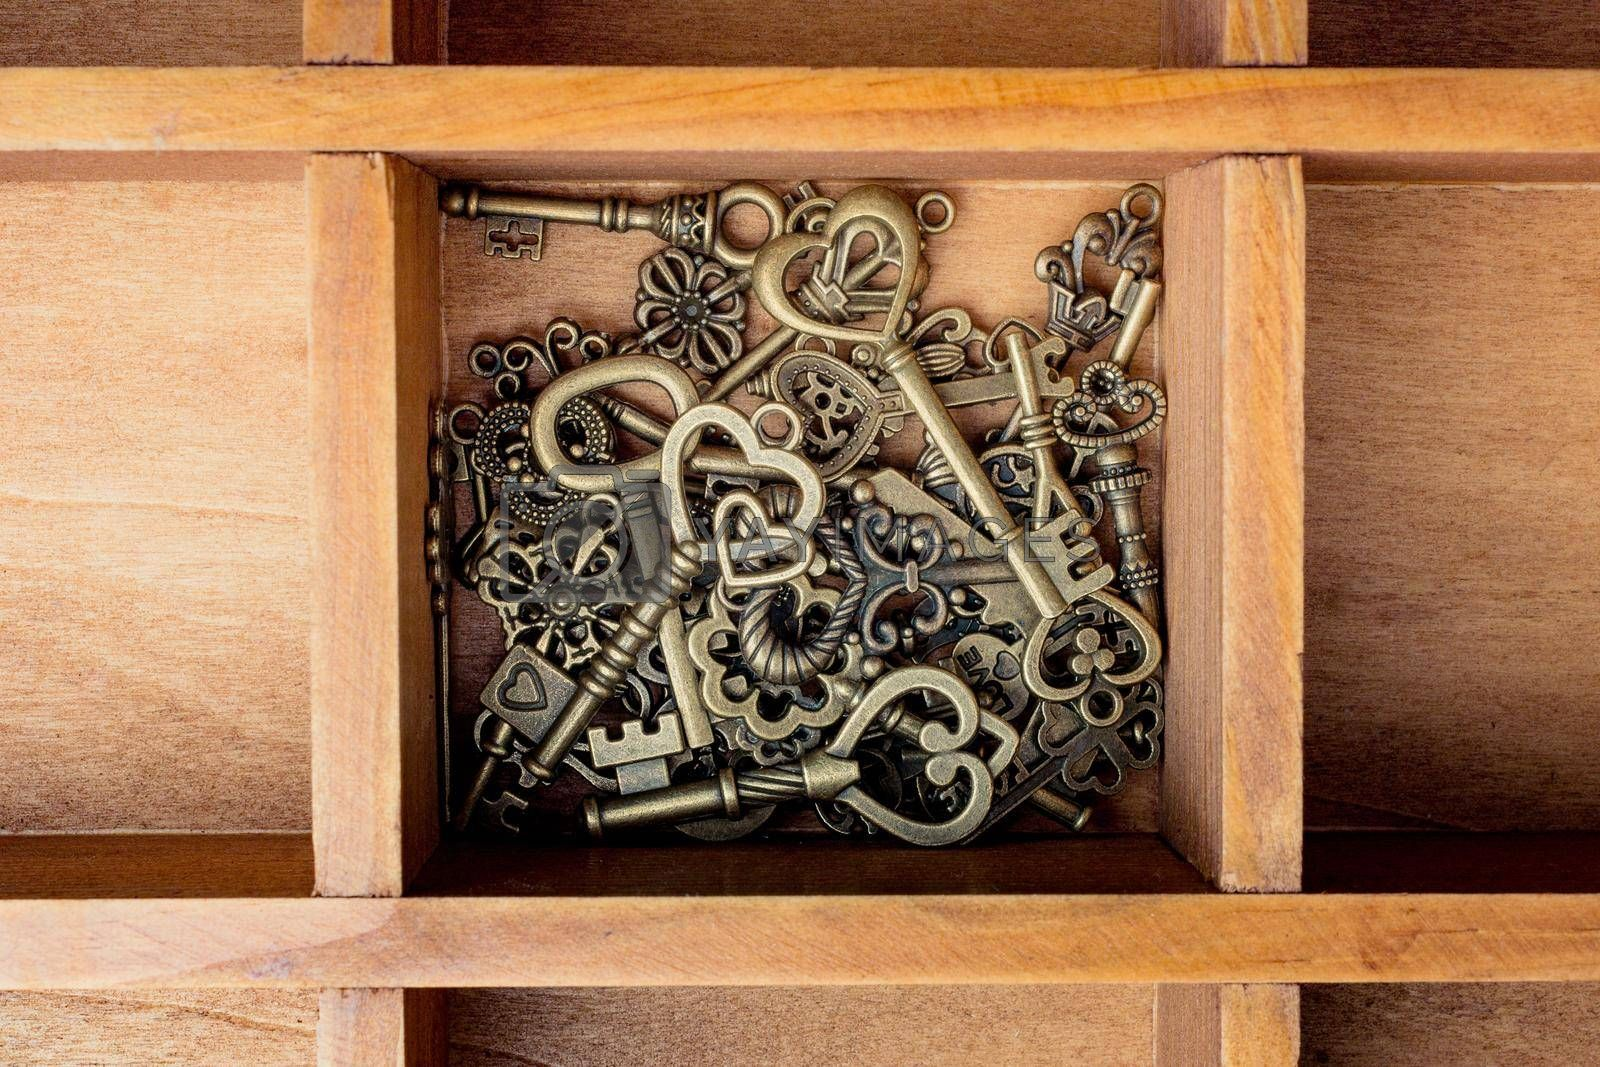 Retro style metal keys in a wooden box